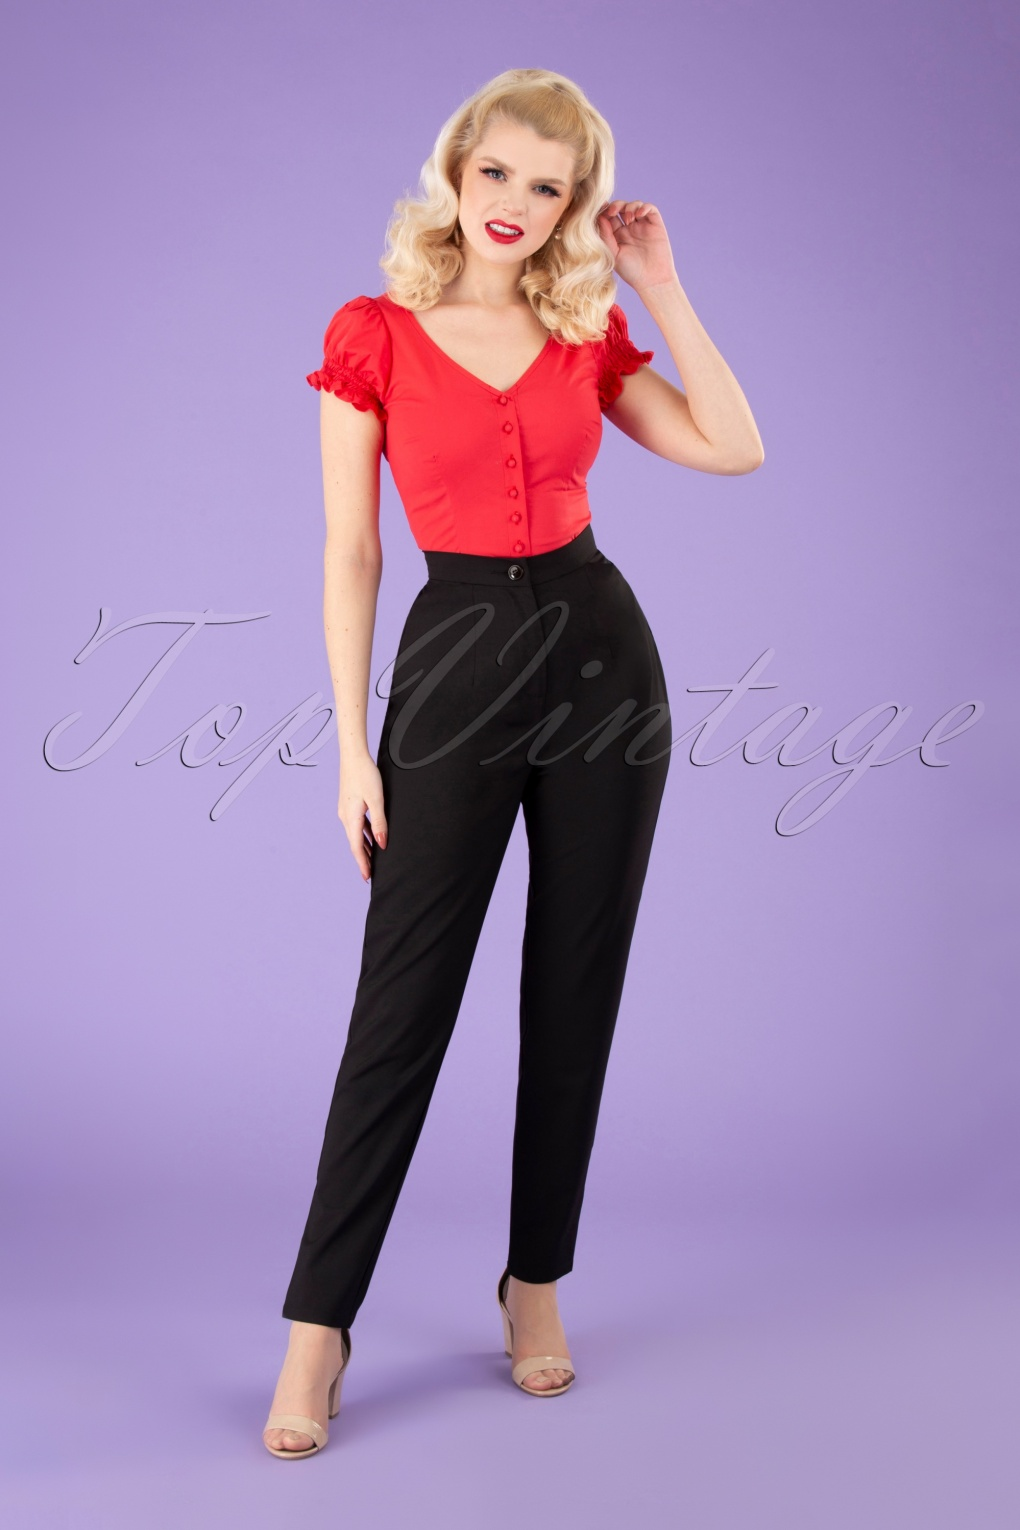 Vintage High Waisted Trousers, Sailor Pants, Jeans 50s Louise Cigarette Trousers in Black £42.49 AT vintagedancer.com